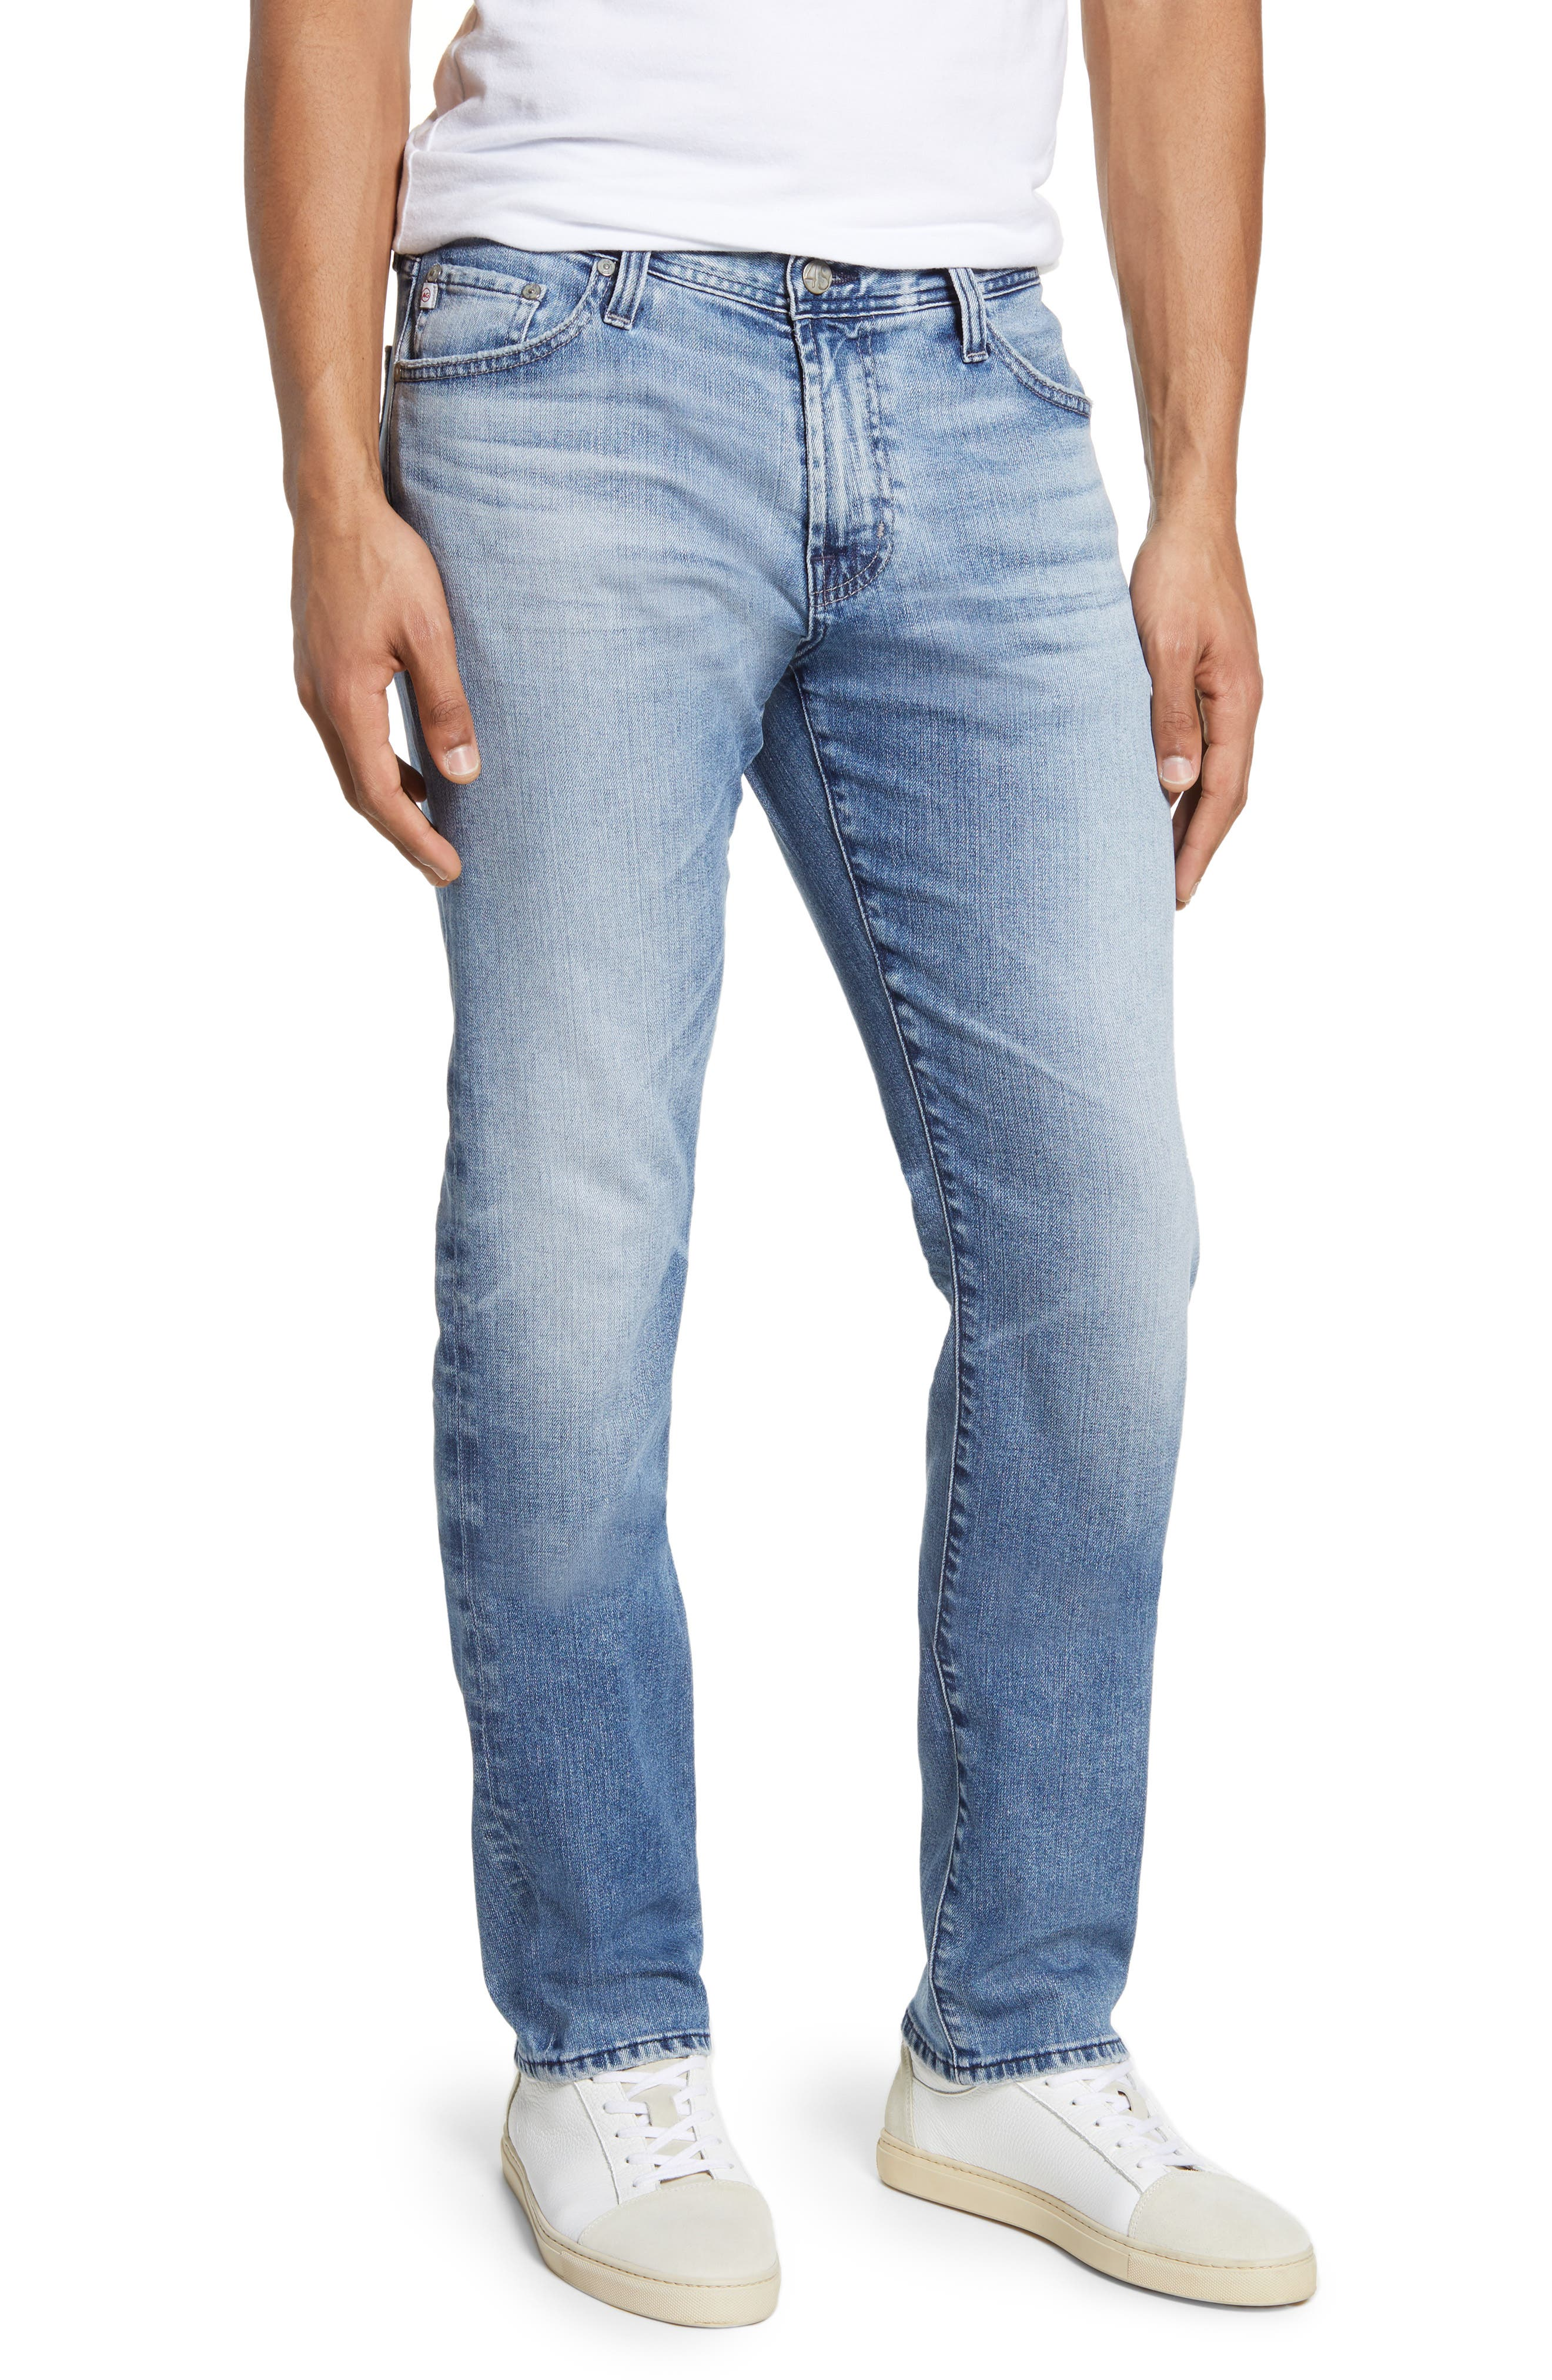 h and m mens jeans uk